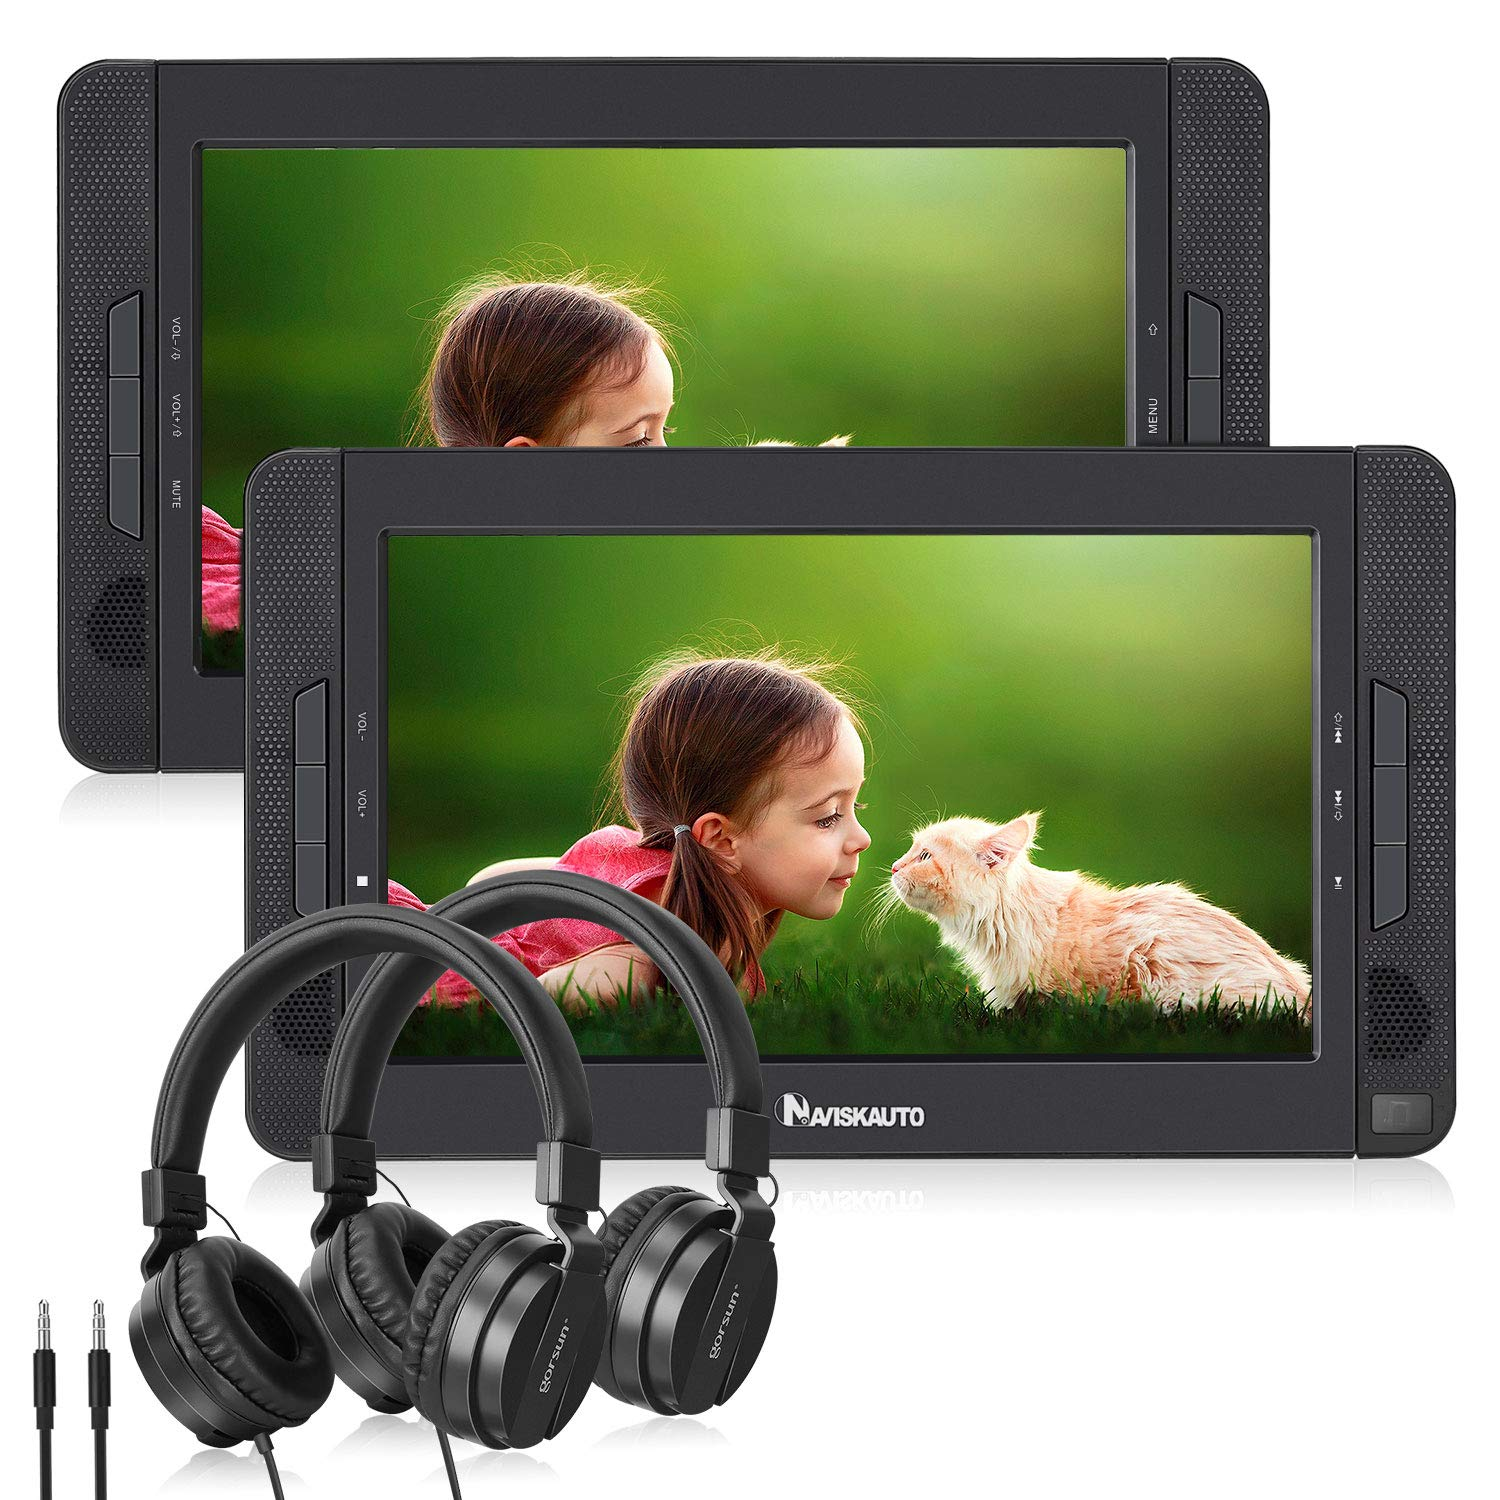 NAVISKAUTO 10.1'' Dual Screen Portable DVD Player for Car, Headrest Video Player with 5-Hour Rechargeable Battery, Last Memory Function and Two Headphones by NAVISKAUTO